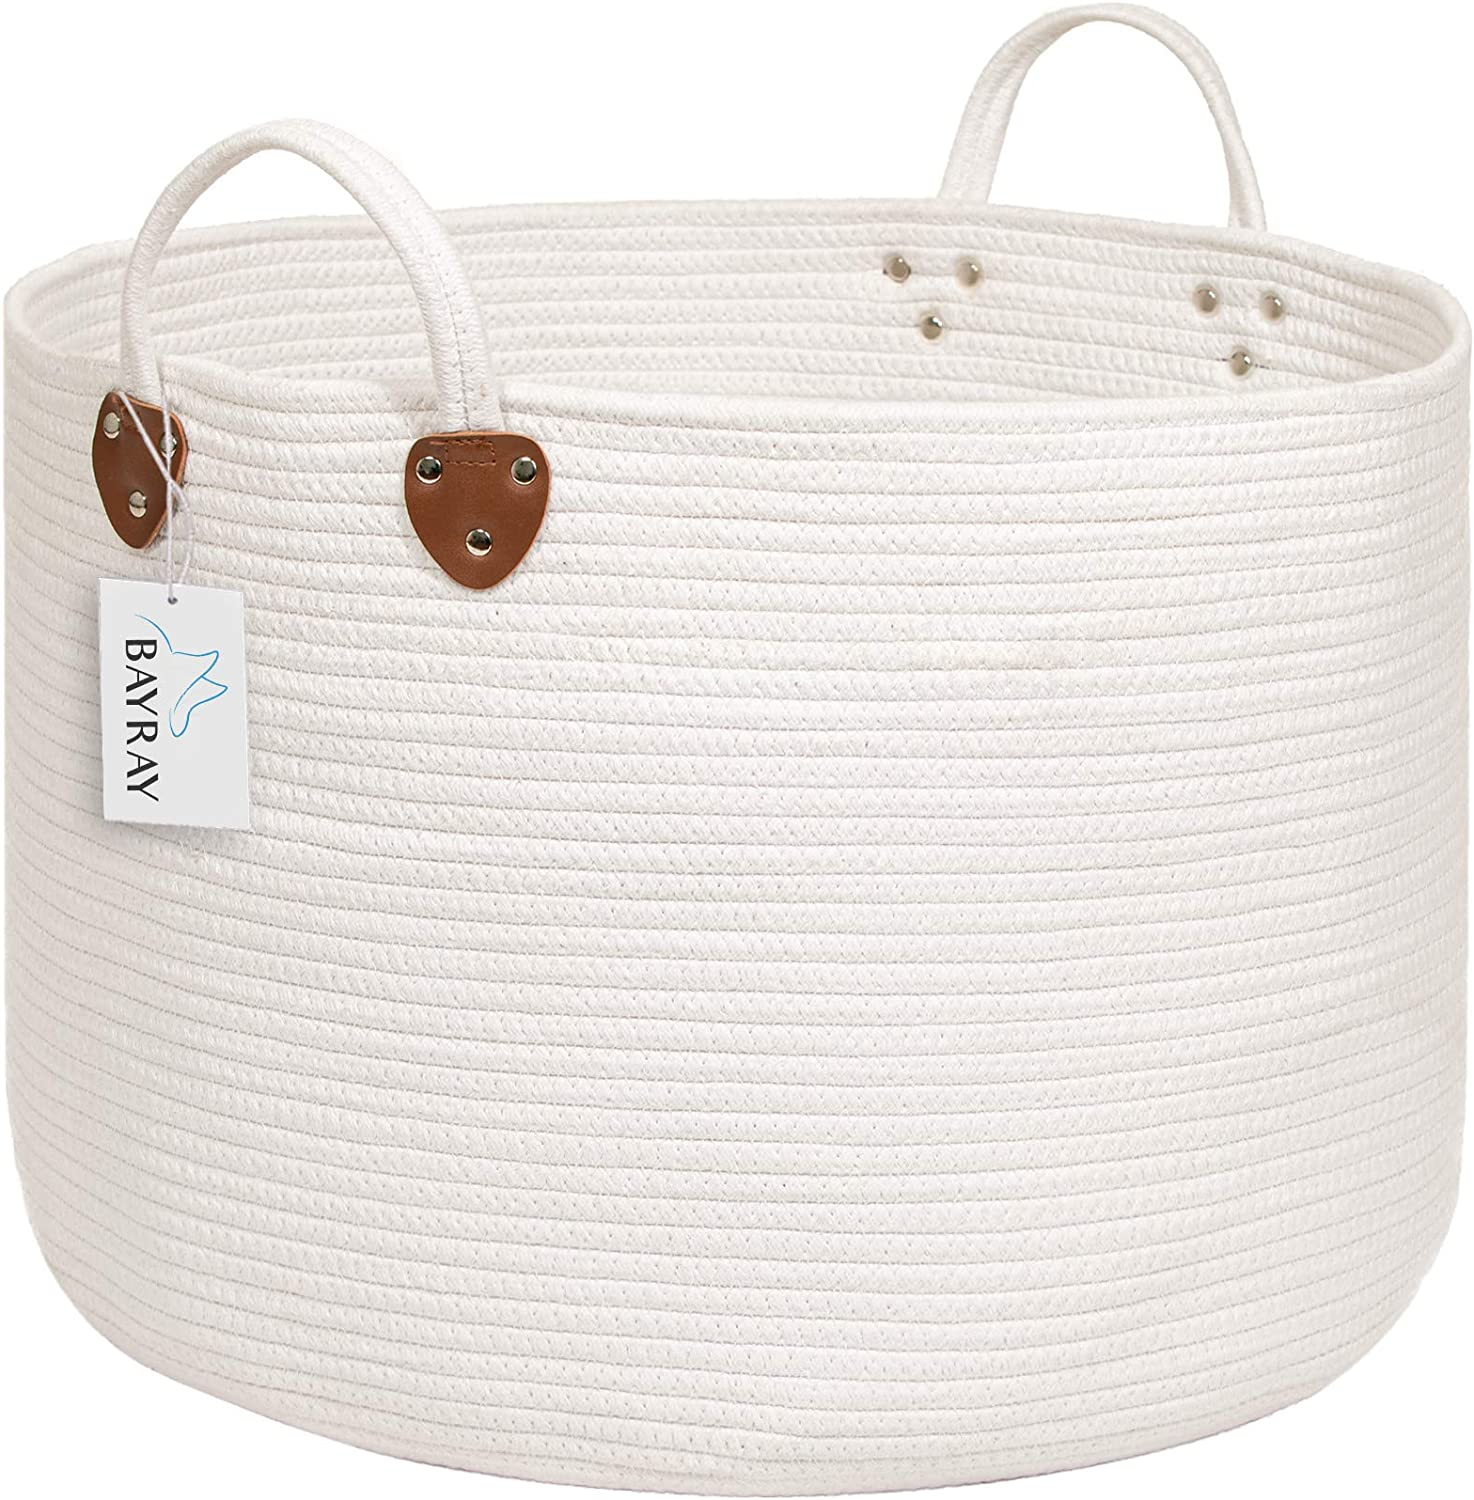 "BAYRAY XXL Woven Cotton Rope Laundry Basket 20"" X 20"" X 13.3"" Off White Basket Woven Laundry Basket Baby Nursery Hamper Collapsible Organizer Decorative Storage Basket for Toys, Blankets, Pillows"